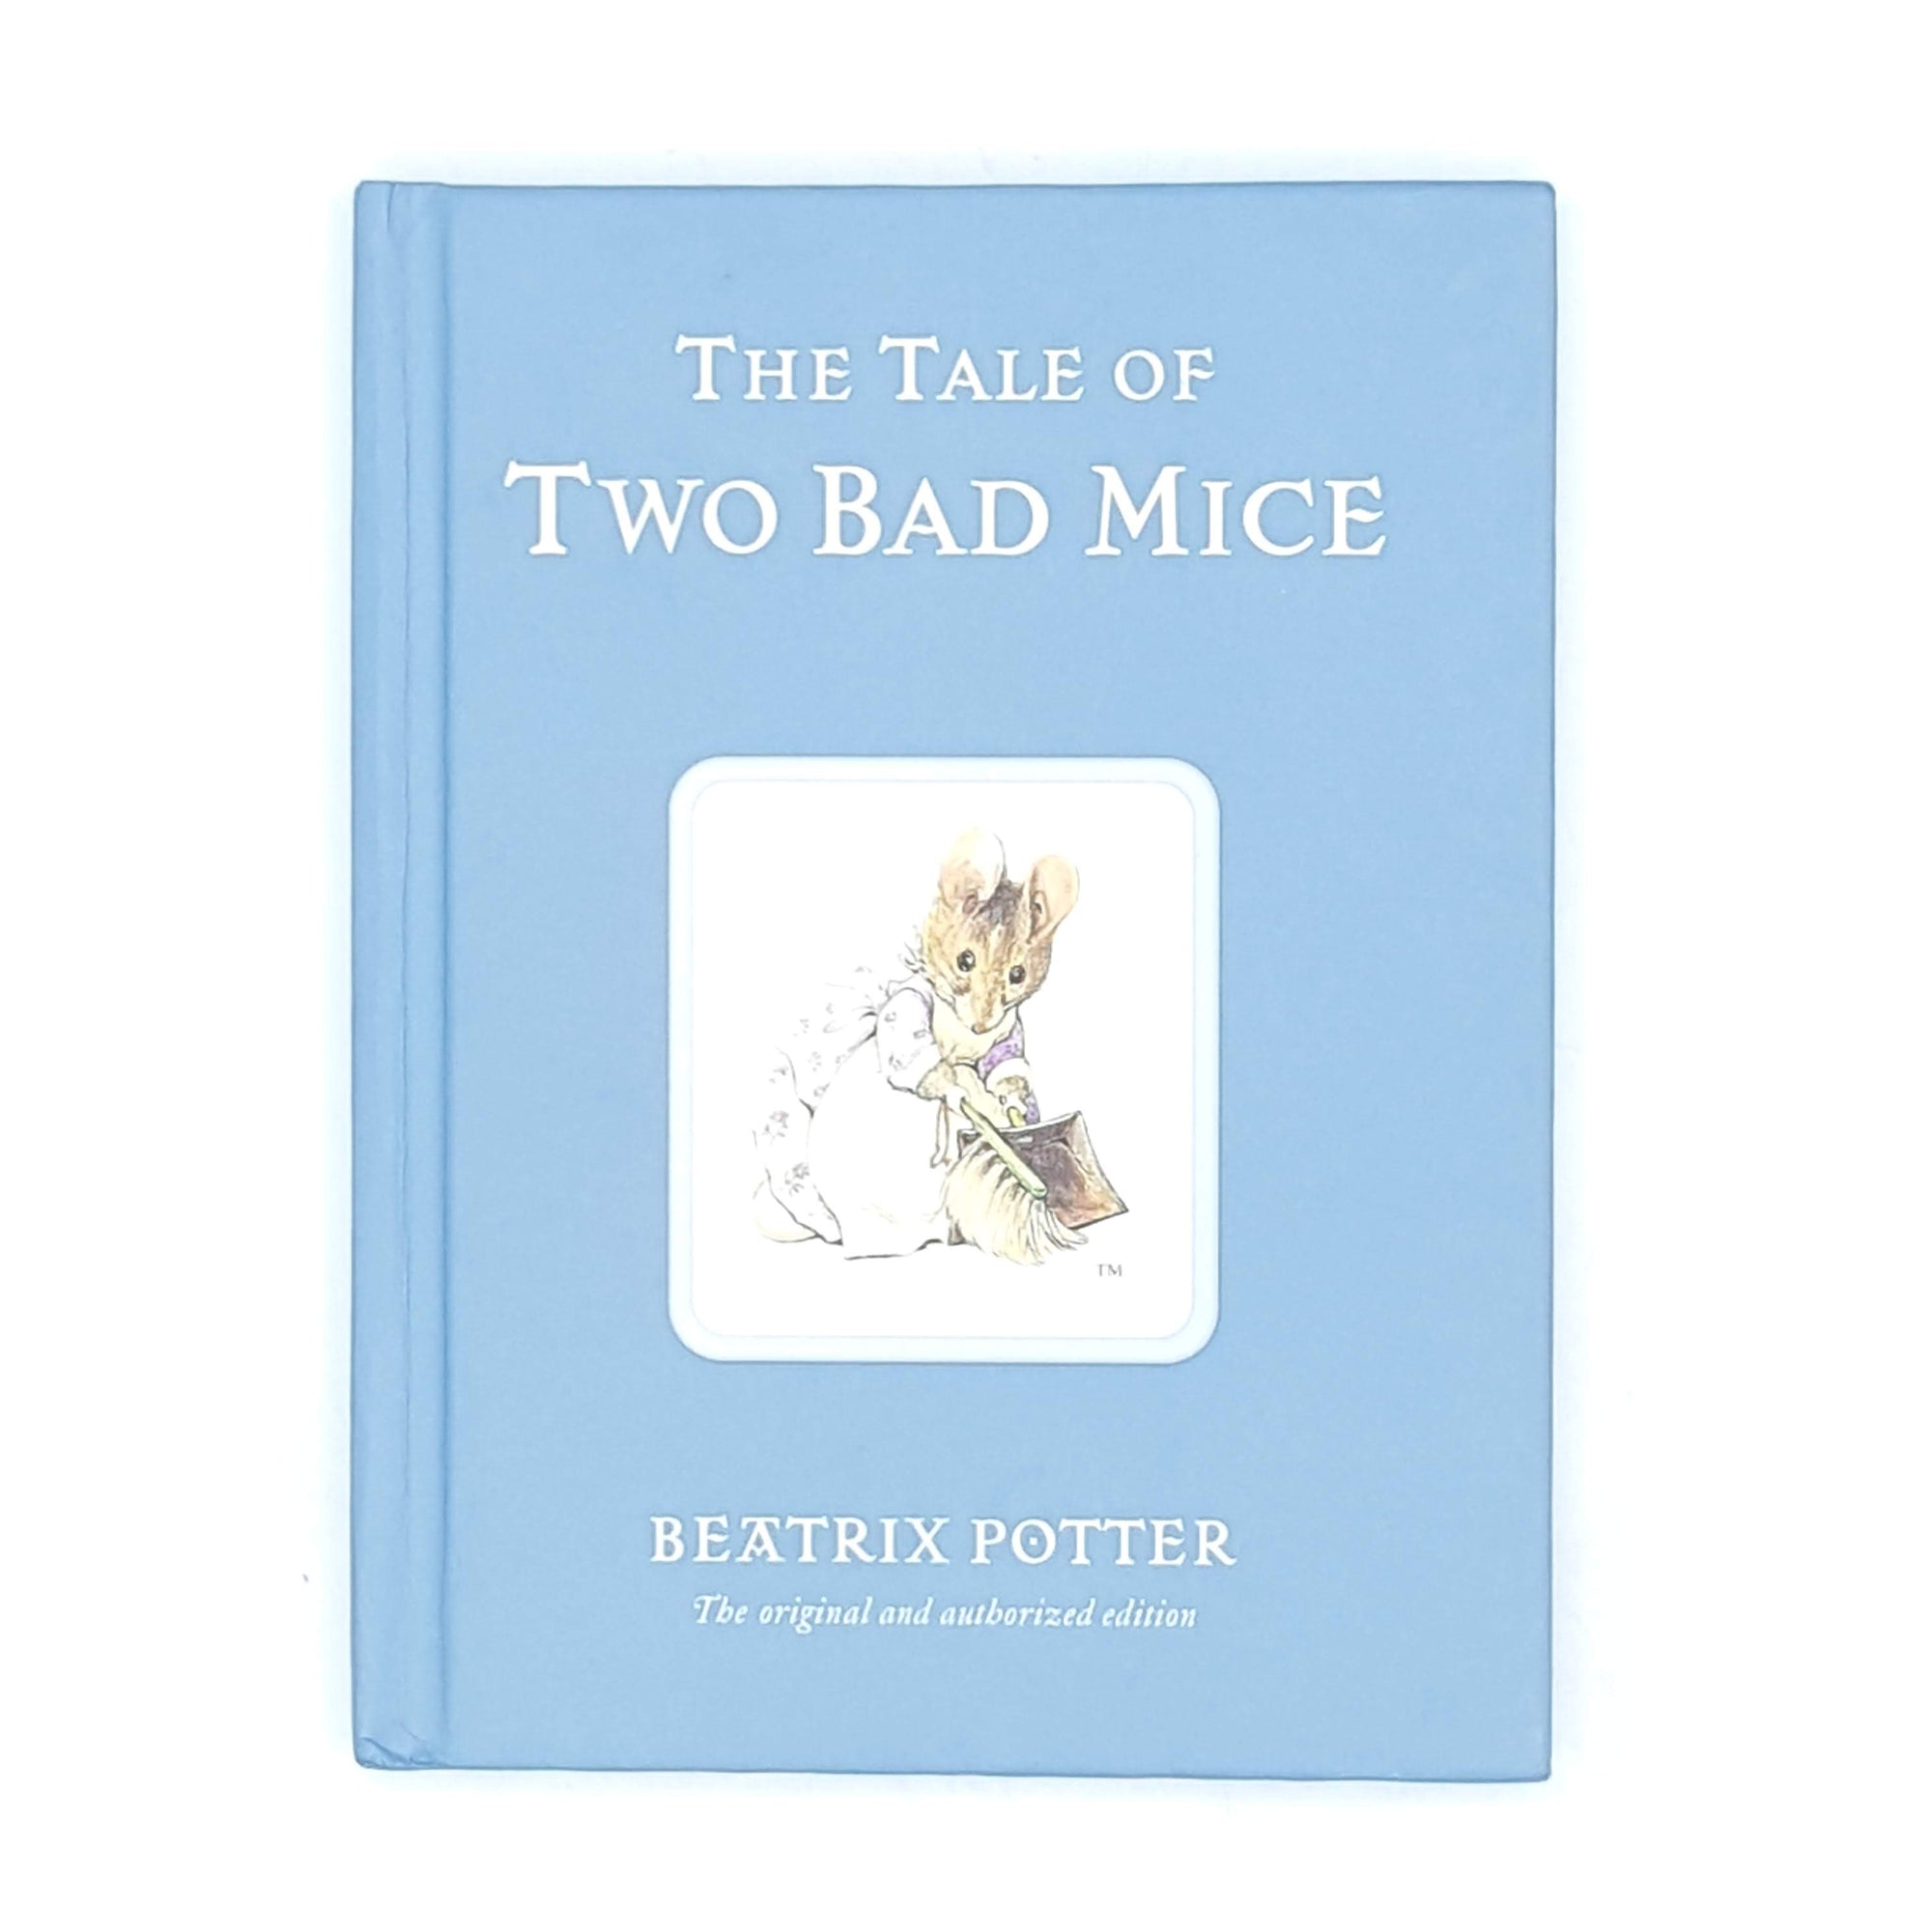 Beatrix Potter's The Tale of Two Bad Mice, blue cover